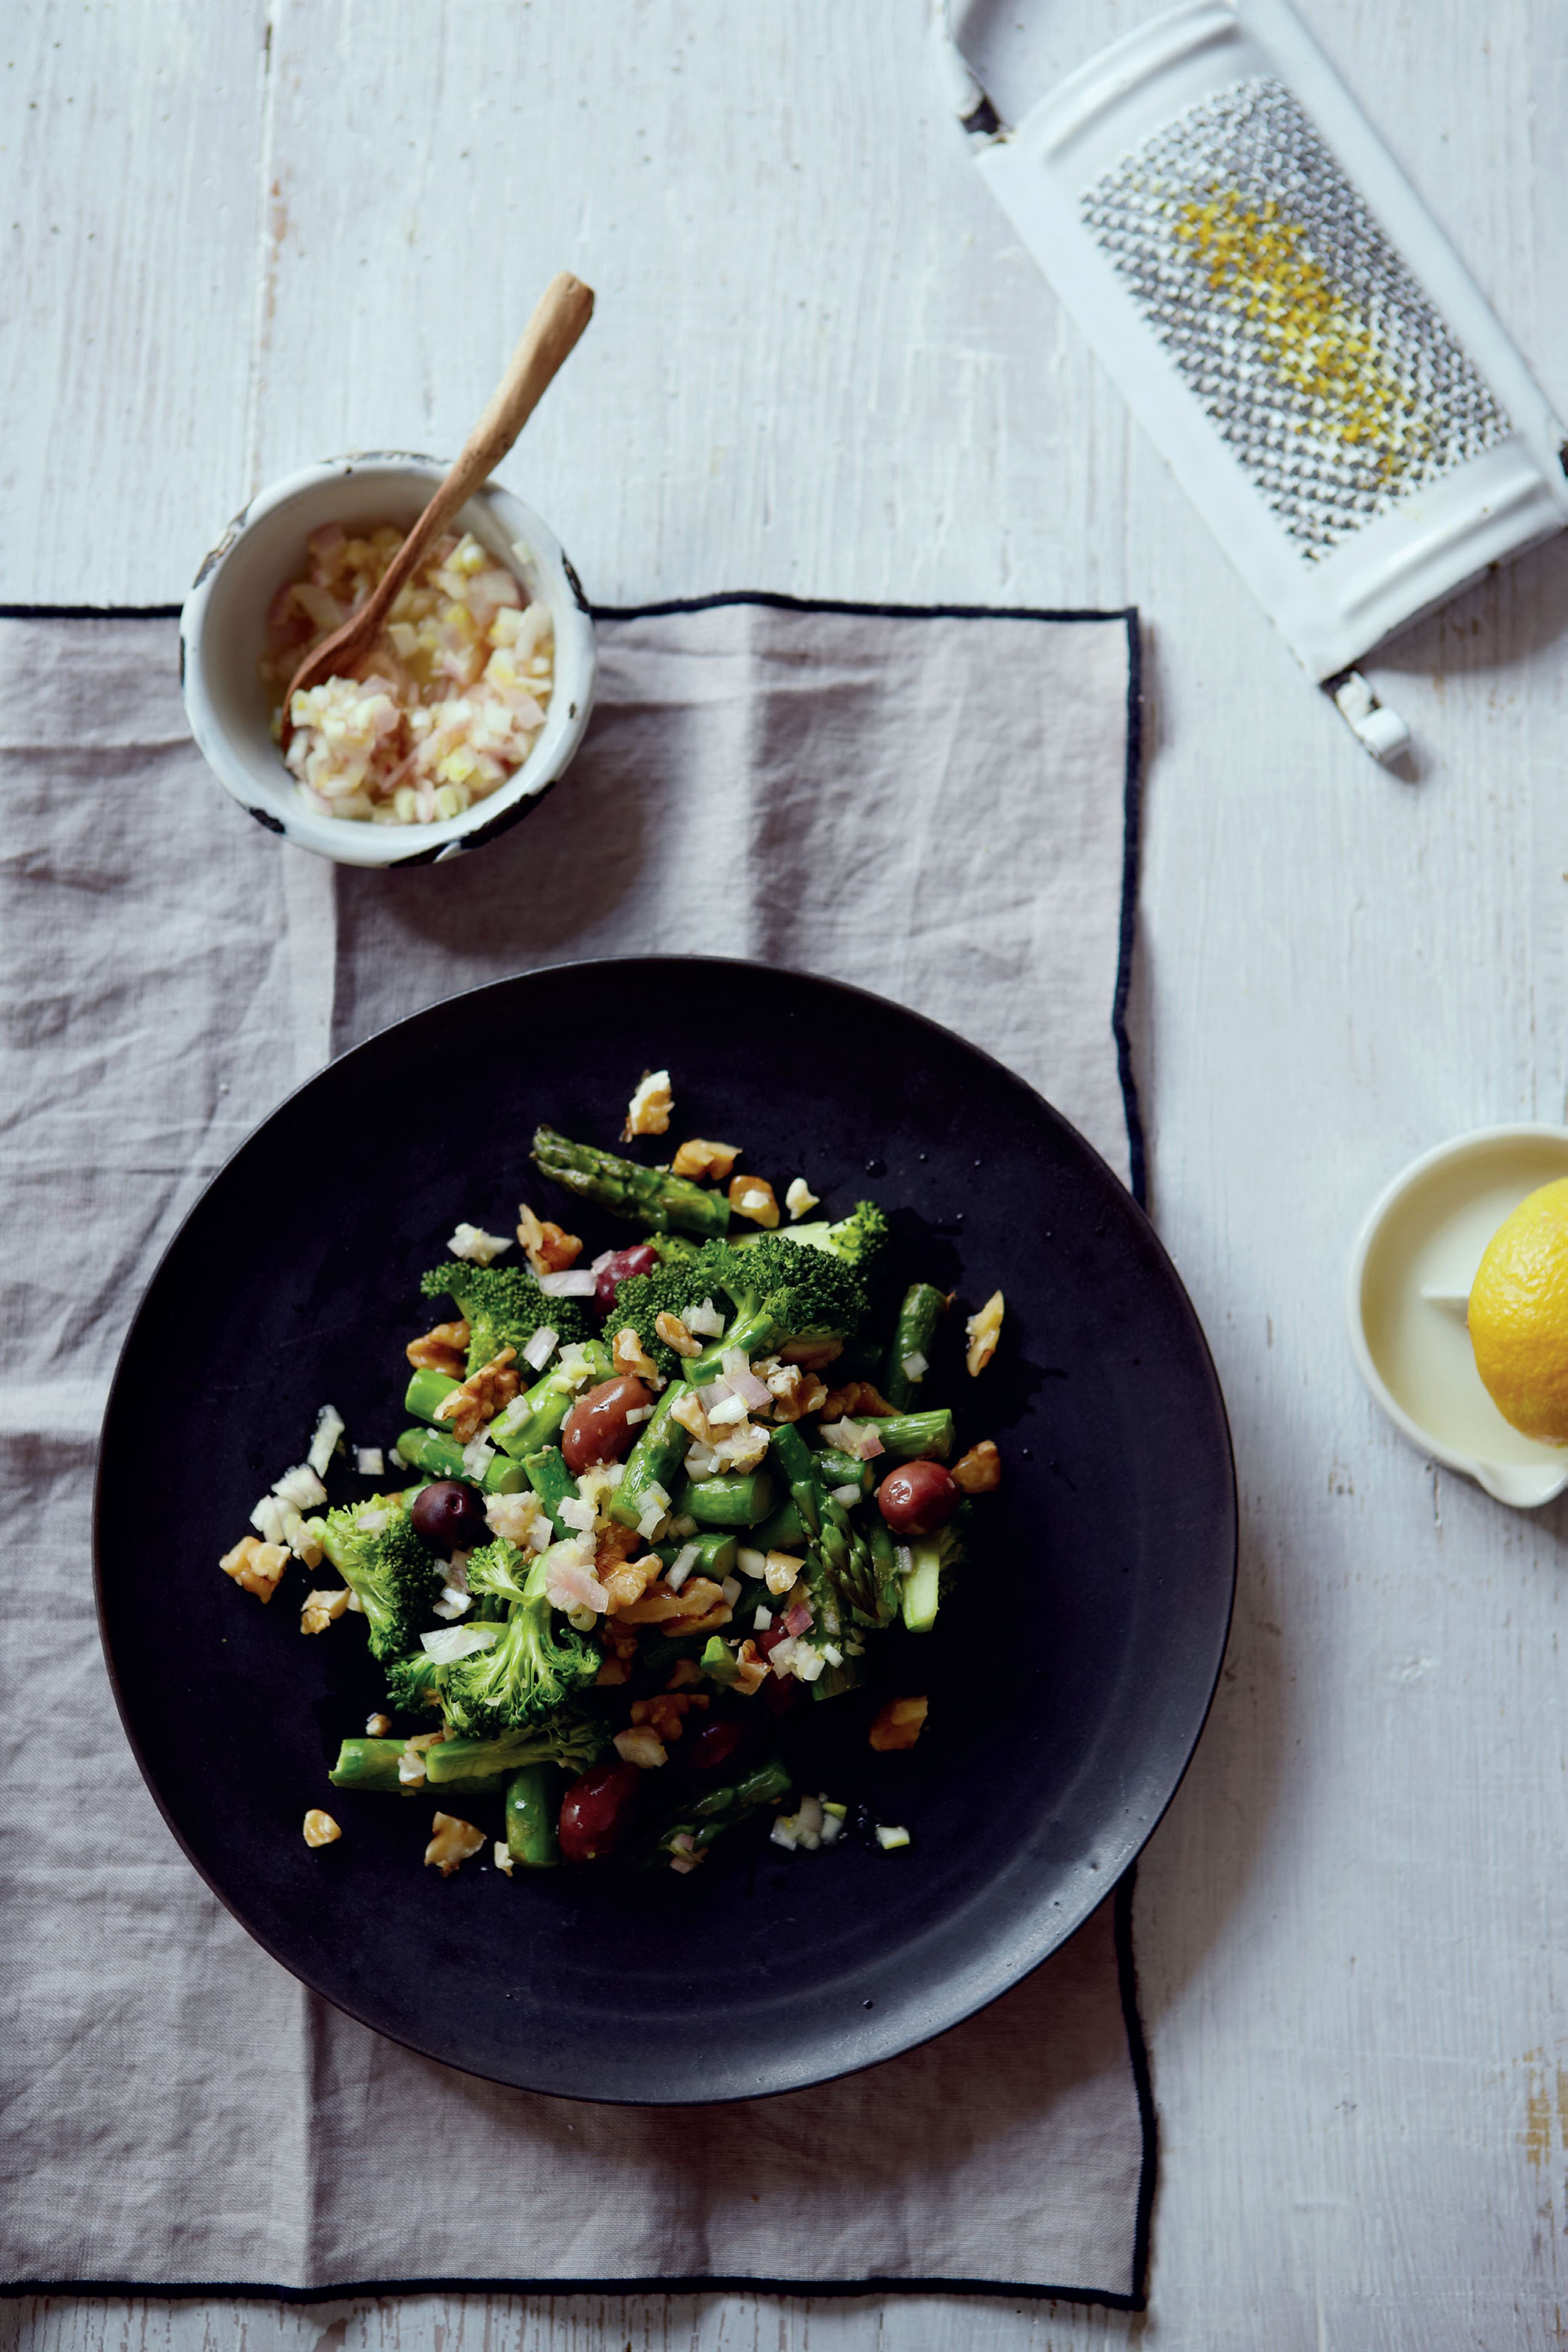 Asparagus, broccoli and coriander salad with walnuts